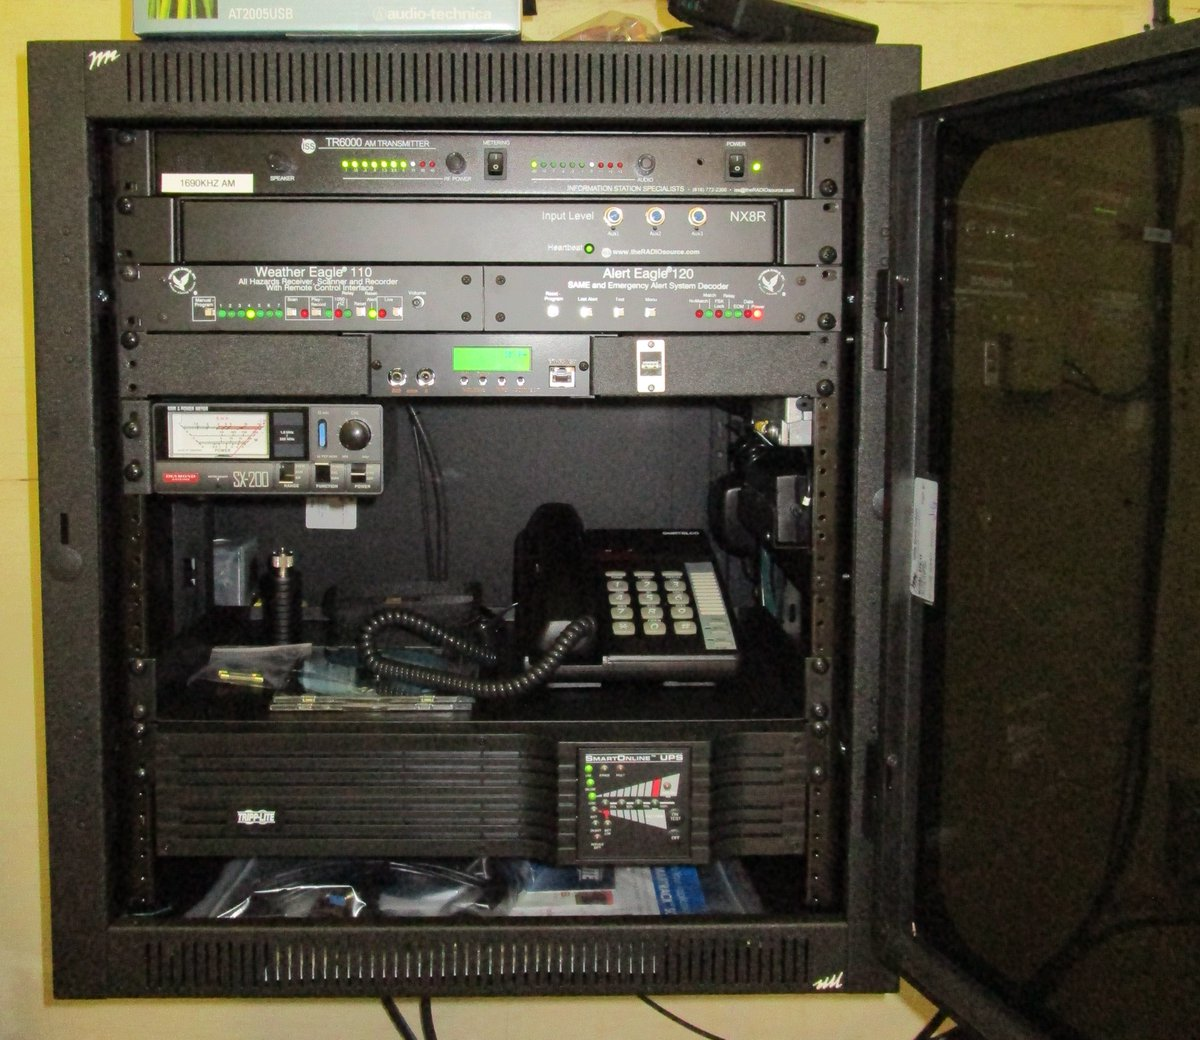 Hello Swfl On Twitter Marco Island Is Getting A New Radio Station This Transmitter Basic But Allows Transmission Of Audio To An Am One Will Transmit Emergency Information During Hurricanes Road Closures